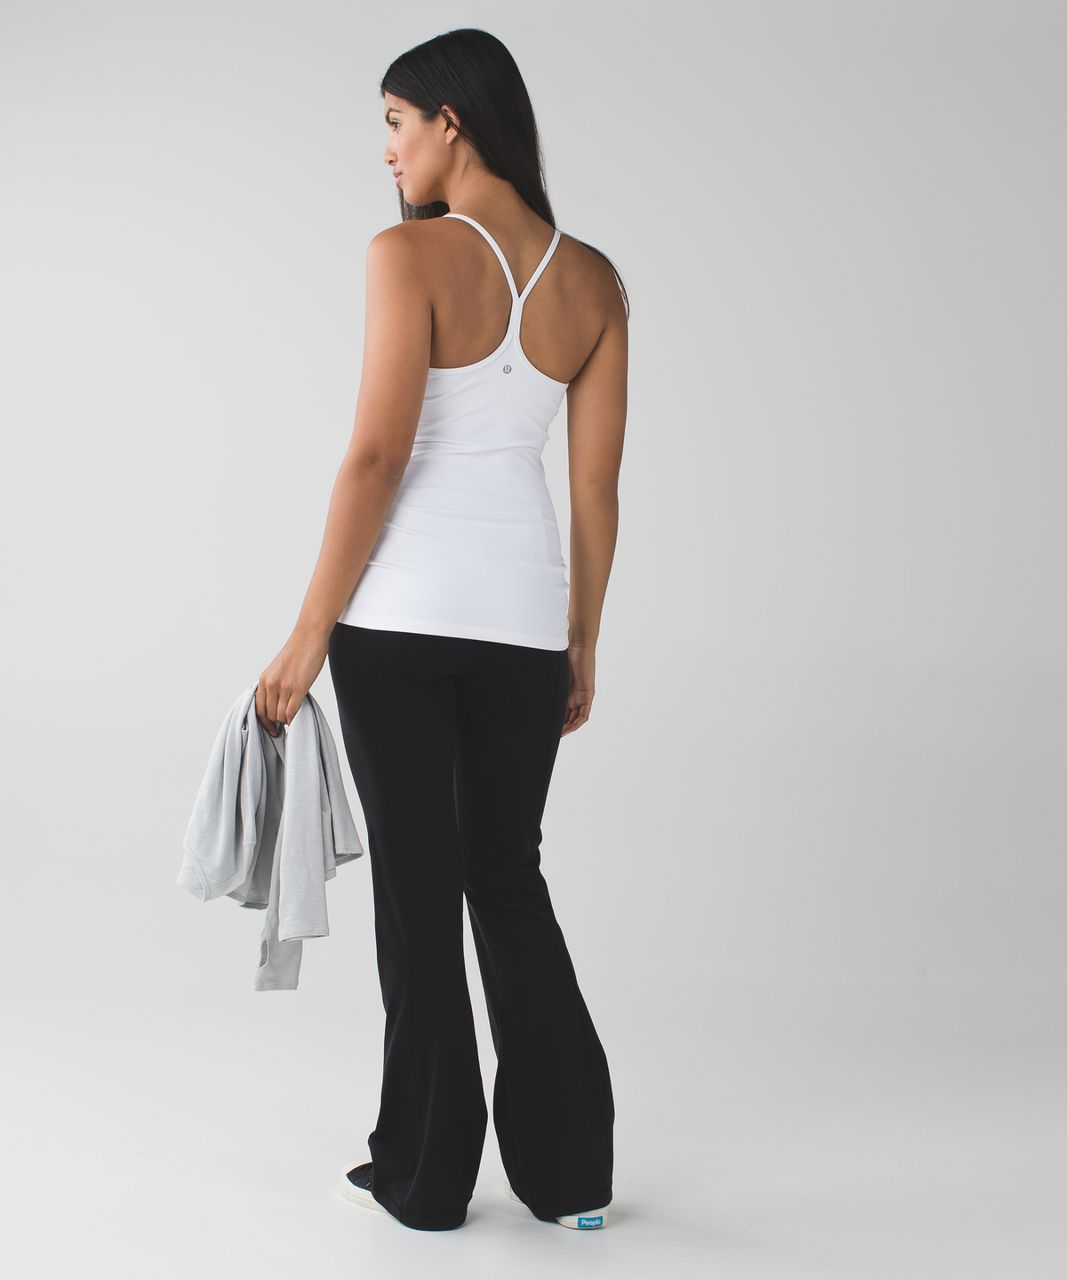 Lululemon Groove Pant III (Regular) - Black / Dramatic Static White Black